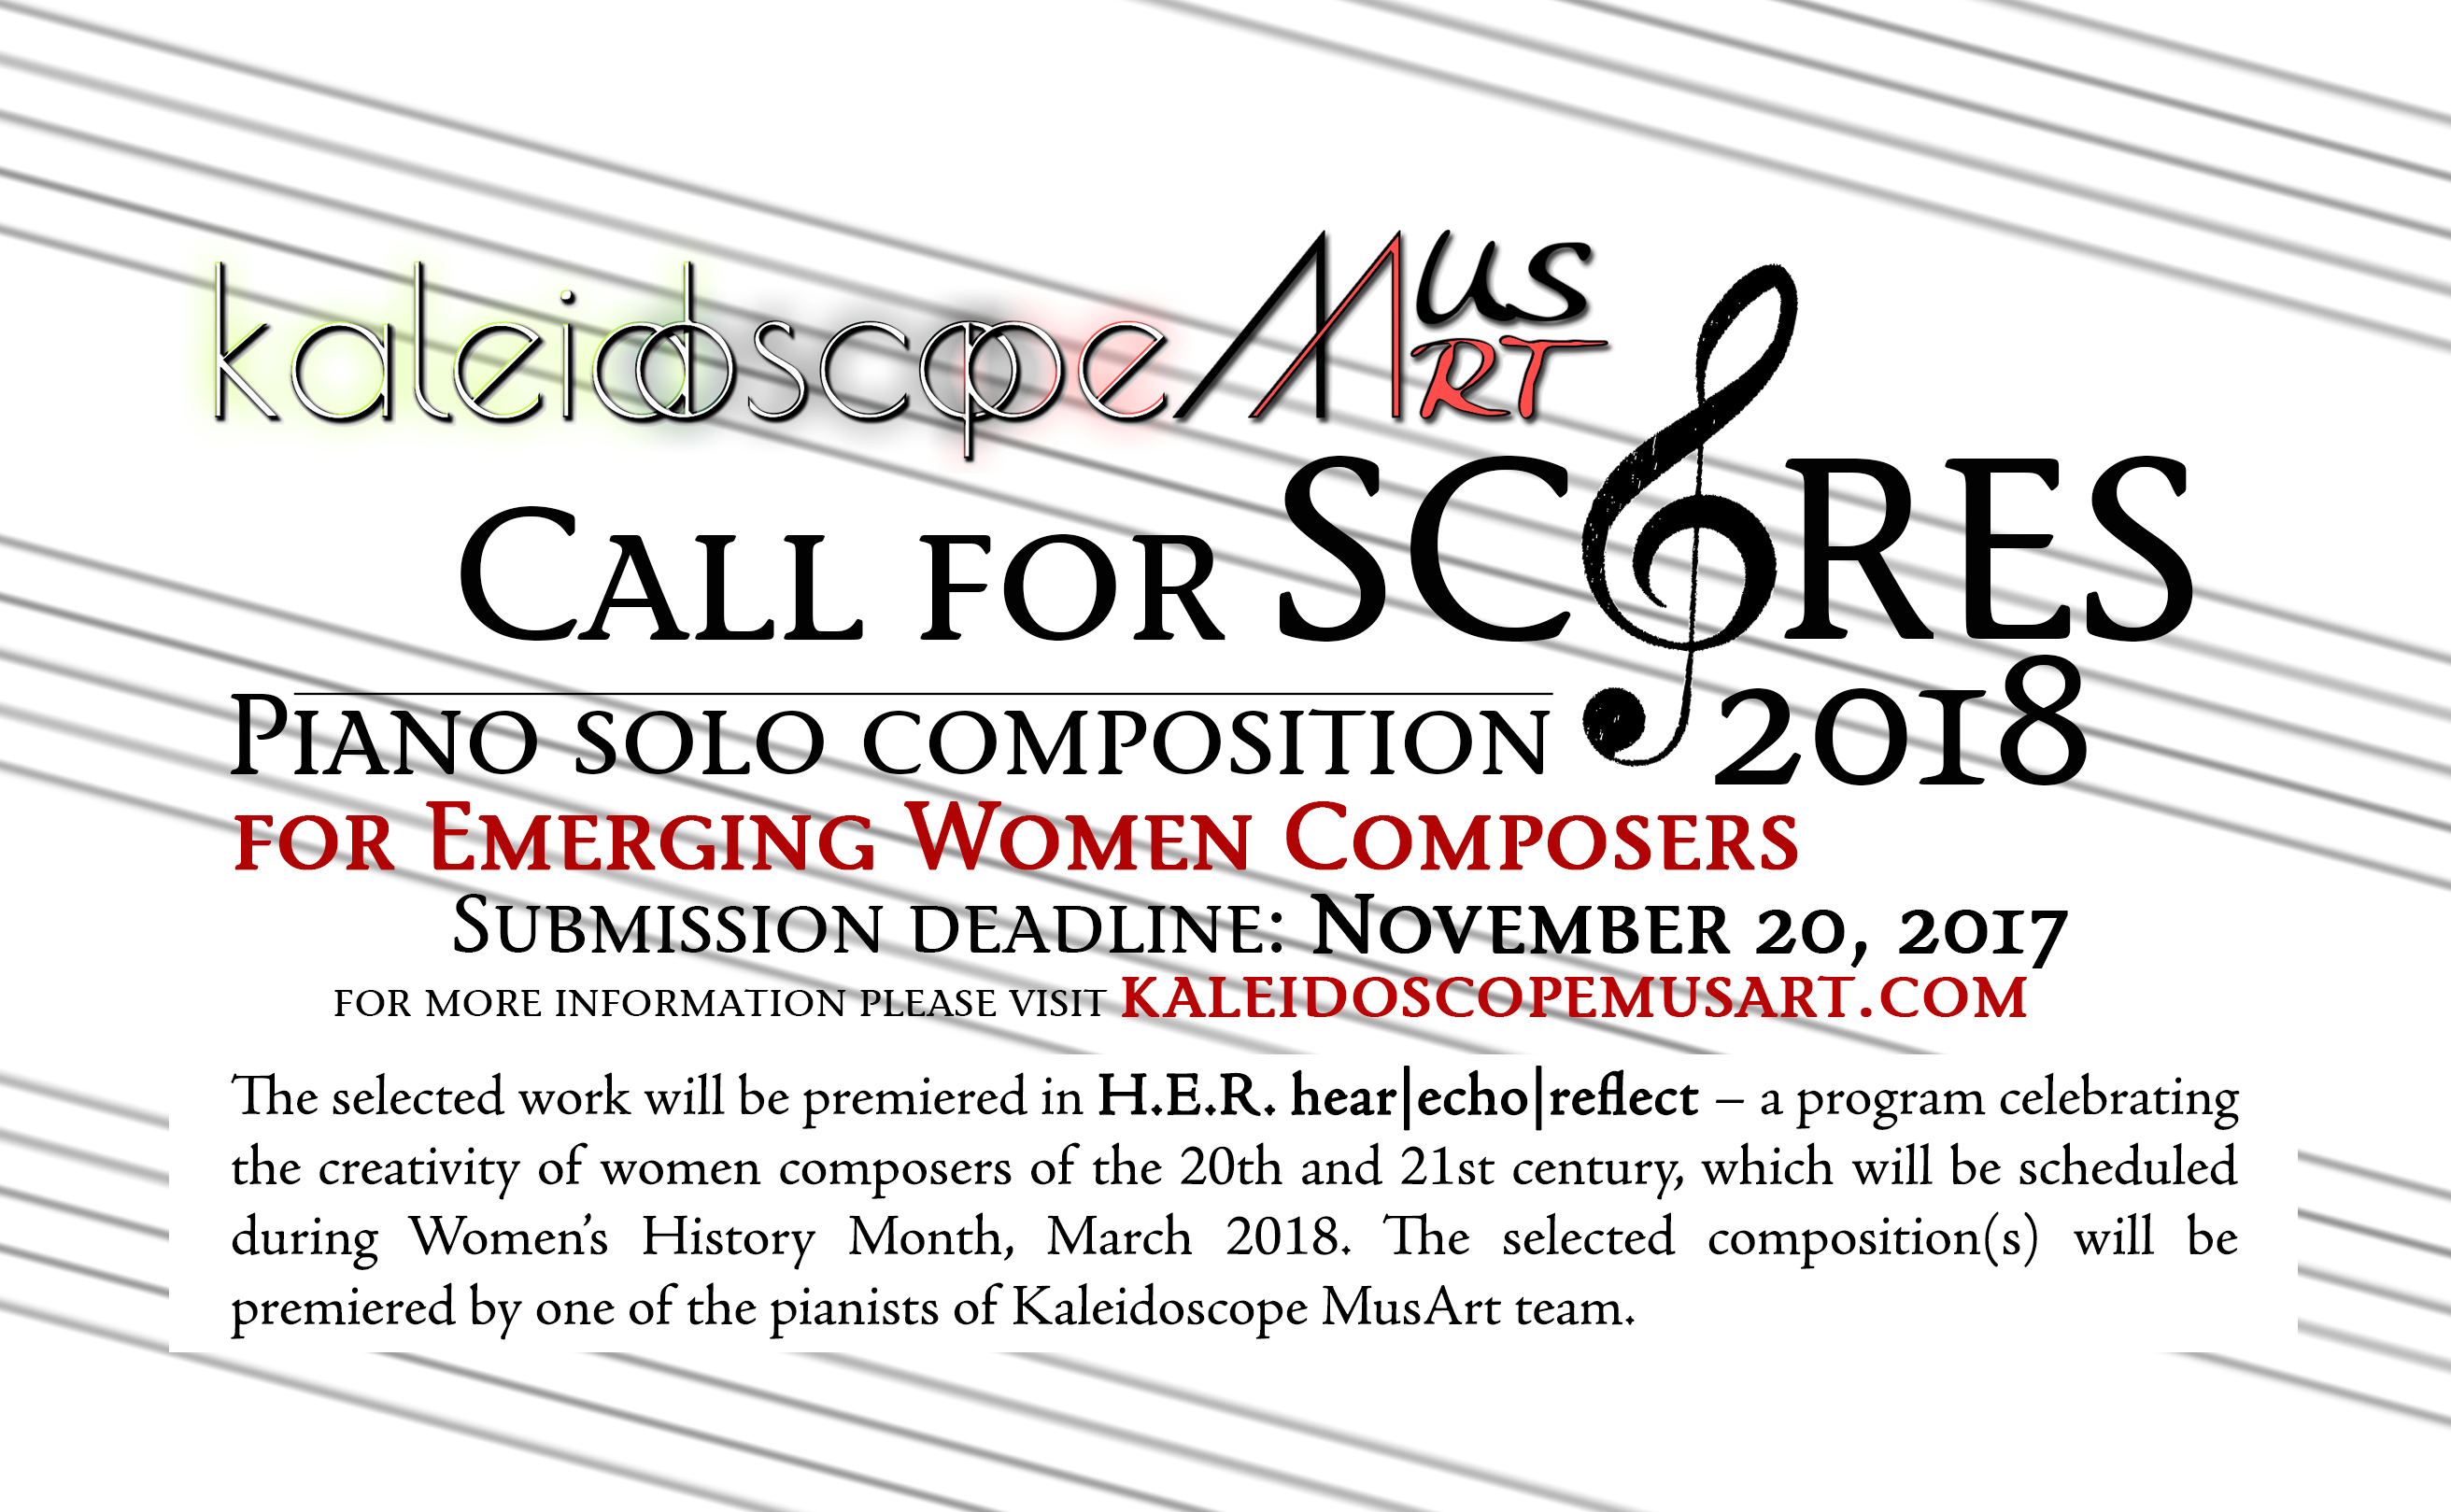 Call for Scores | Piano Solo - Kaleidoscope MusArt